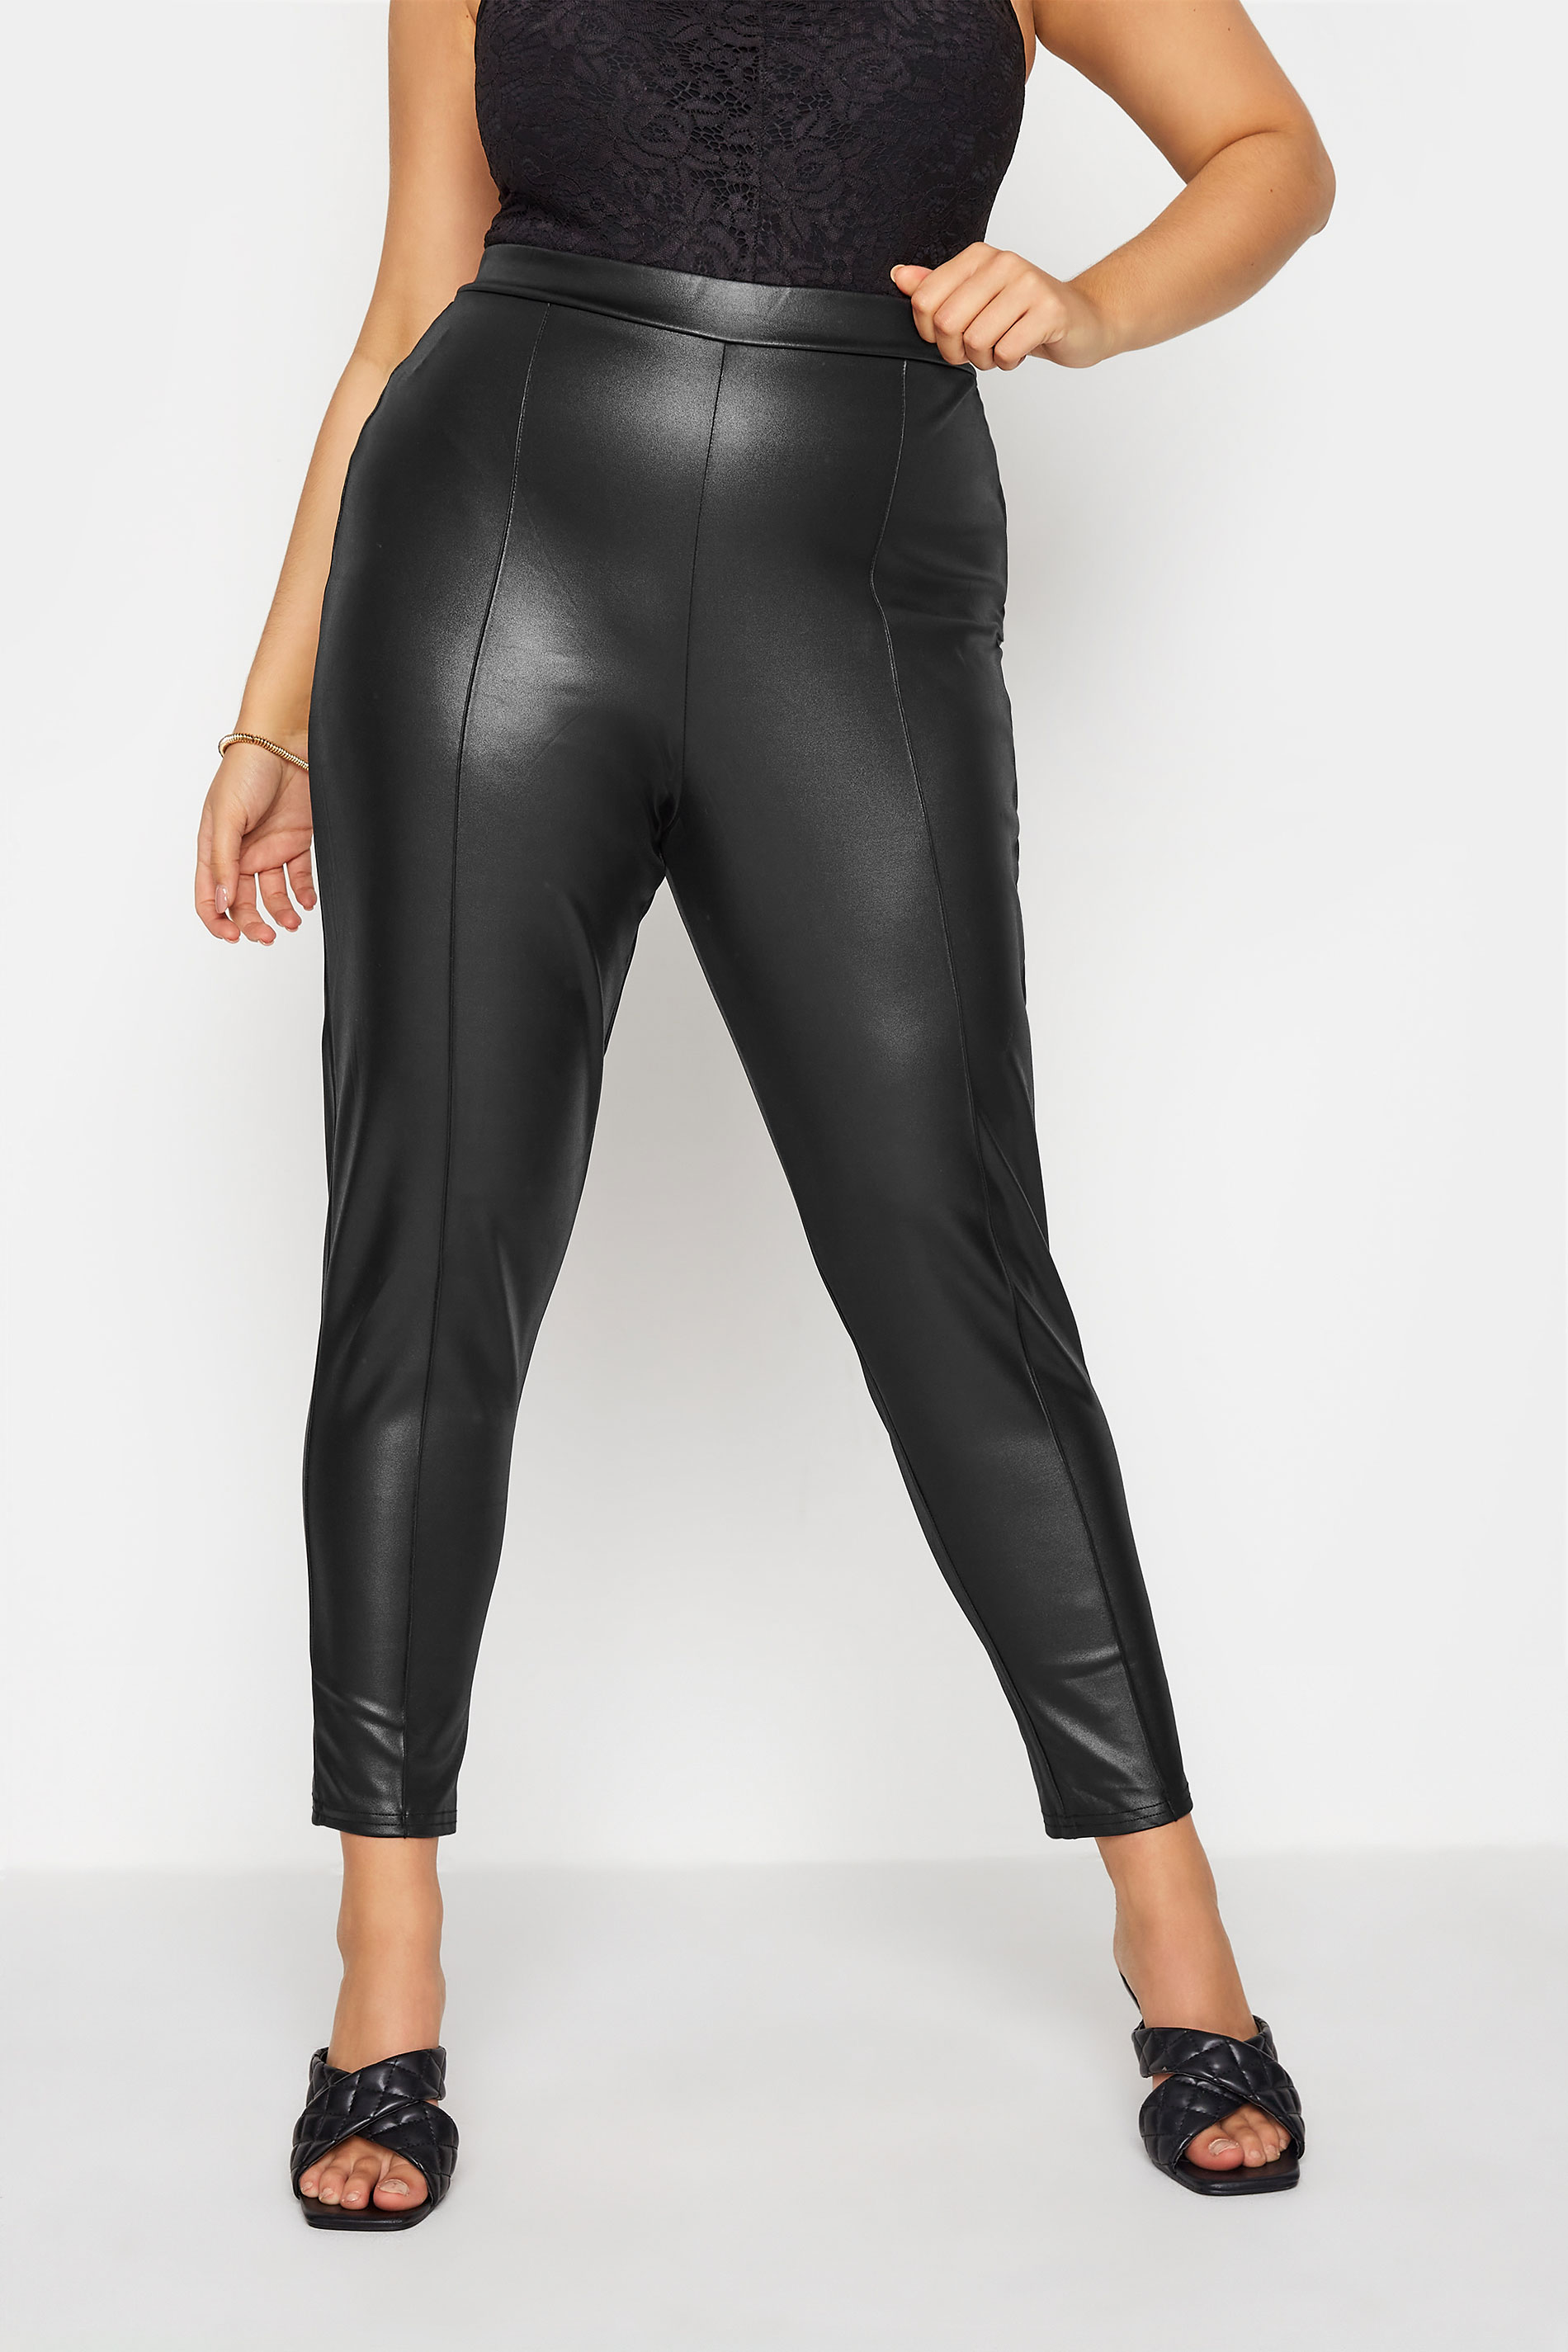 YOURS LONDON Black Leather Look Trousers_B.jpg